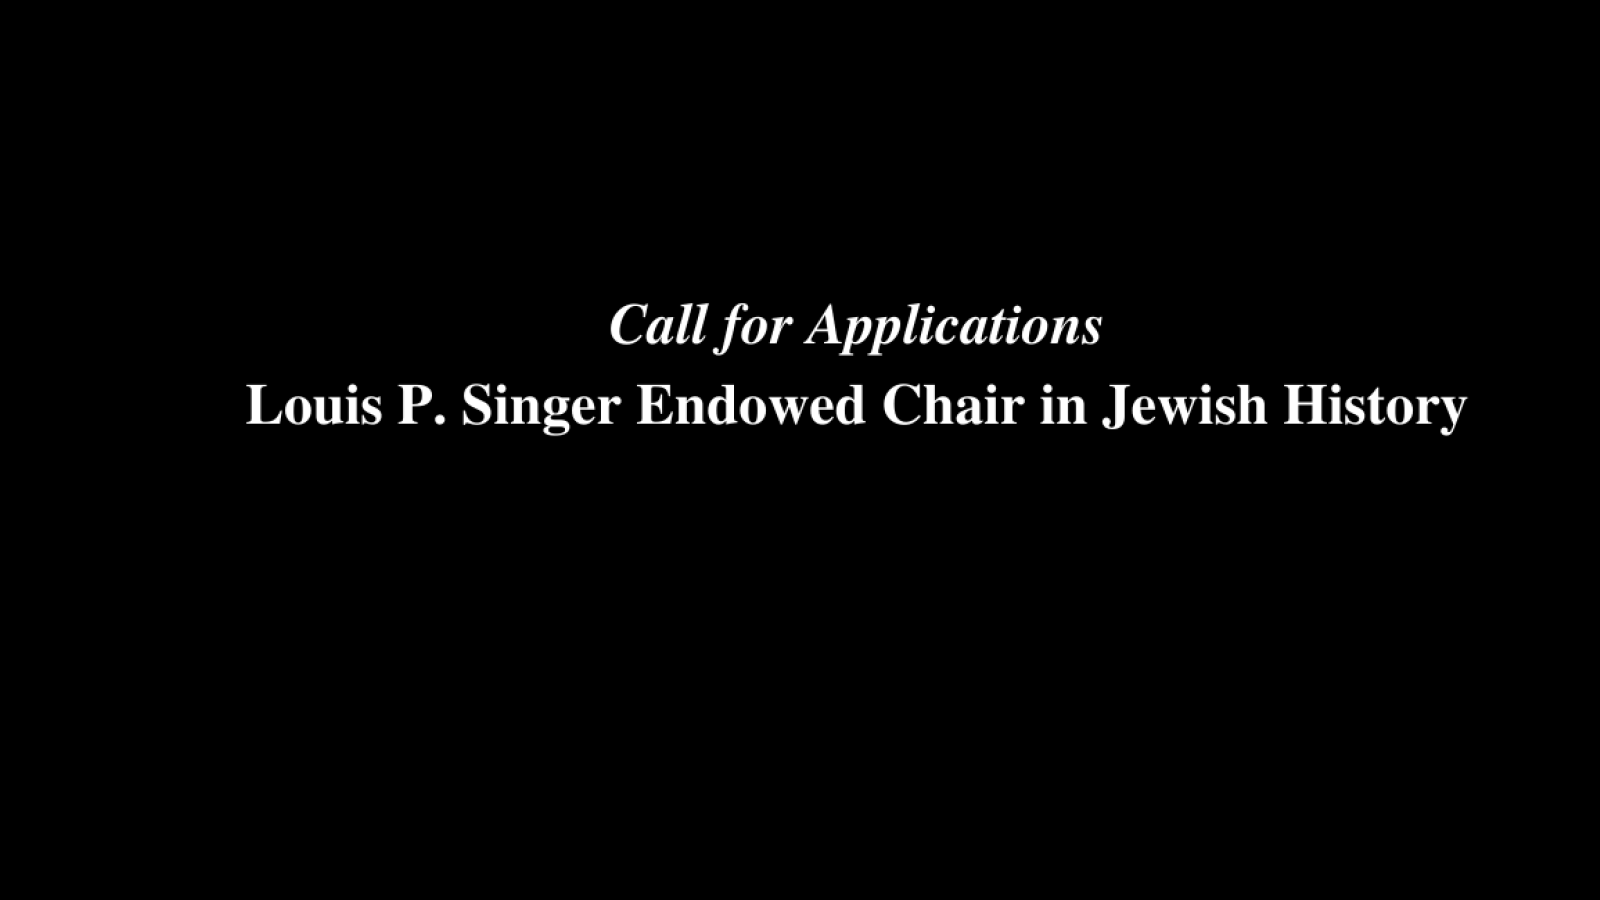 Call for Applications Louis P. Singer Endowed Chair in Jewish History